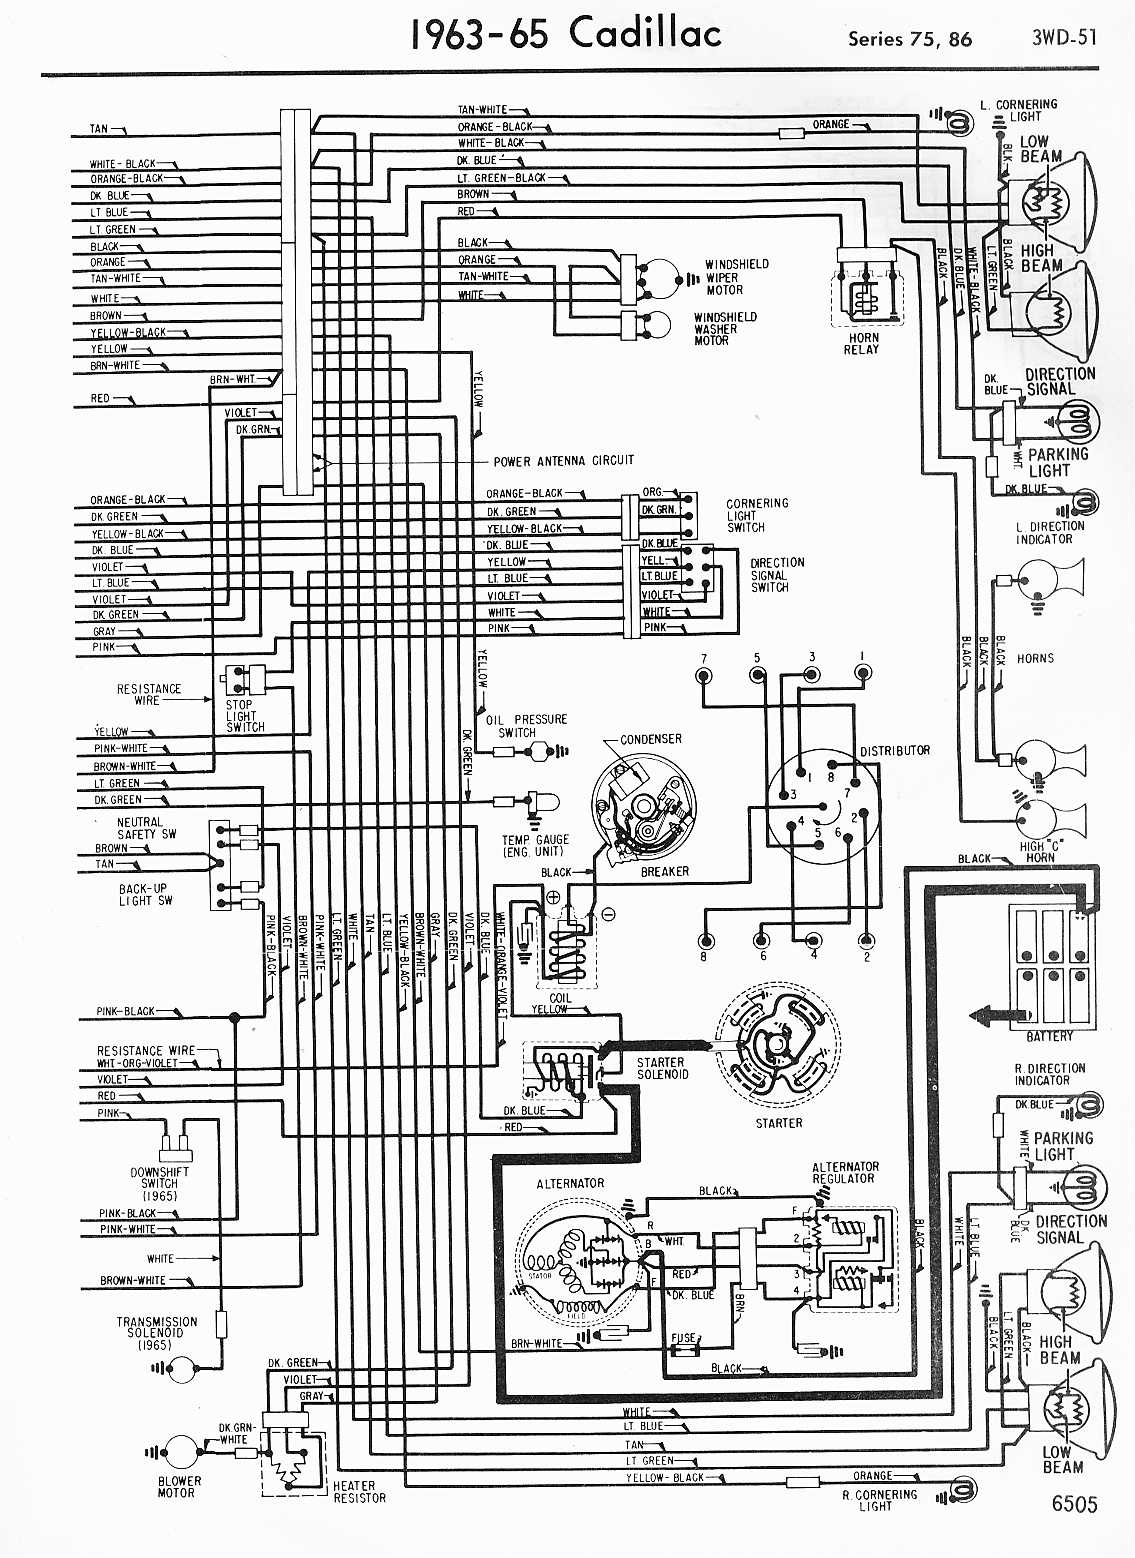 Watch in addition 1967 Mustang 289 Alternator Ps Ac Belt Layout Ford Mustang Forum Inside 1967 Ford Mustang Parts Diagram as well Cadillac Seville Engine Diagram moreover 1965 70 Cadillac Coupe De Ville Eldorado likewise 5kfg2 Cadillac 1964 Fleetwood 750 Nine Pass Own 1964 Cadillac. on cadillac eldorado wiring diagram